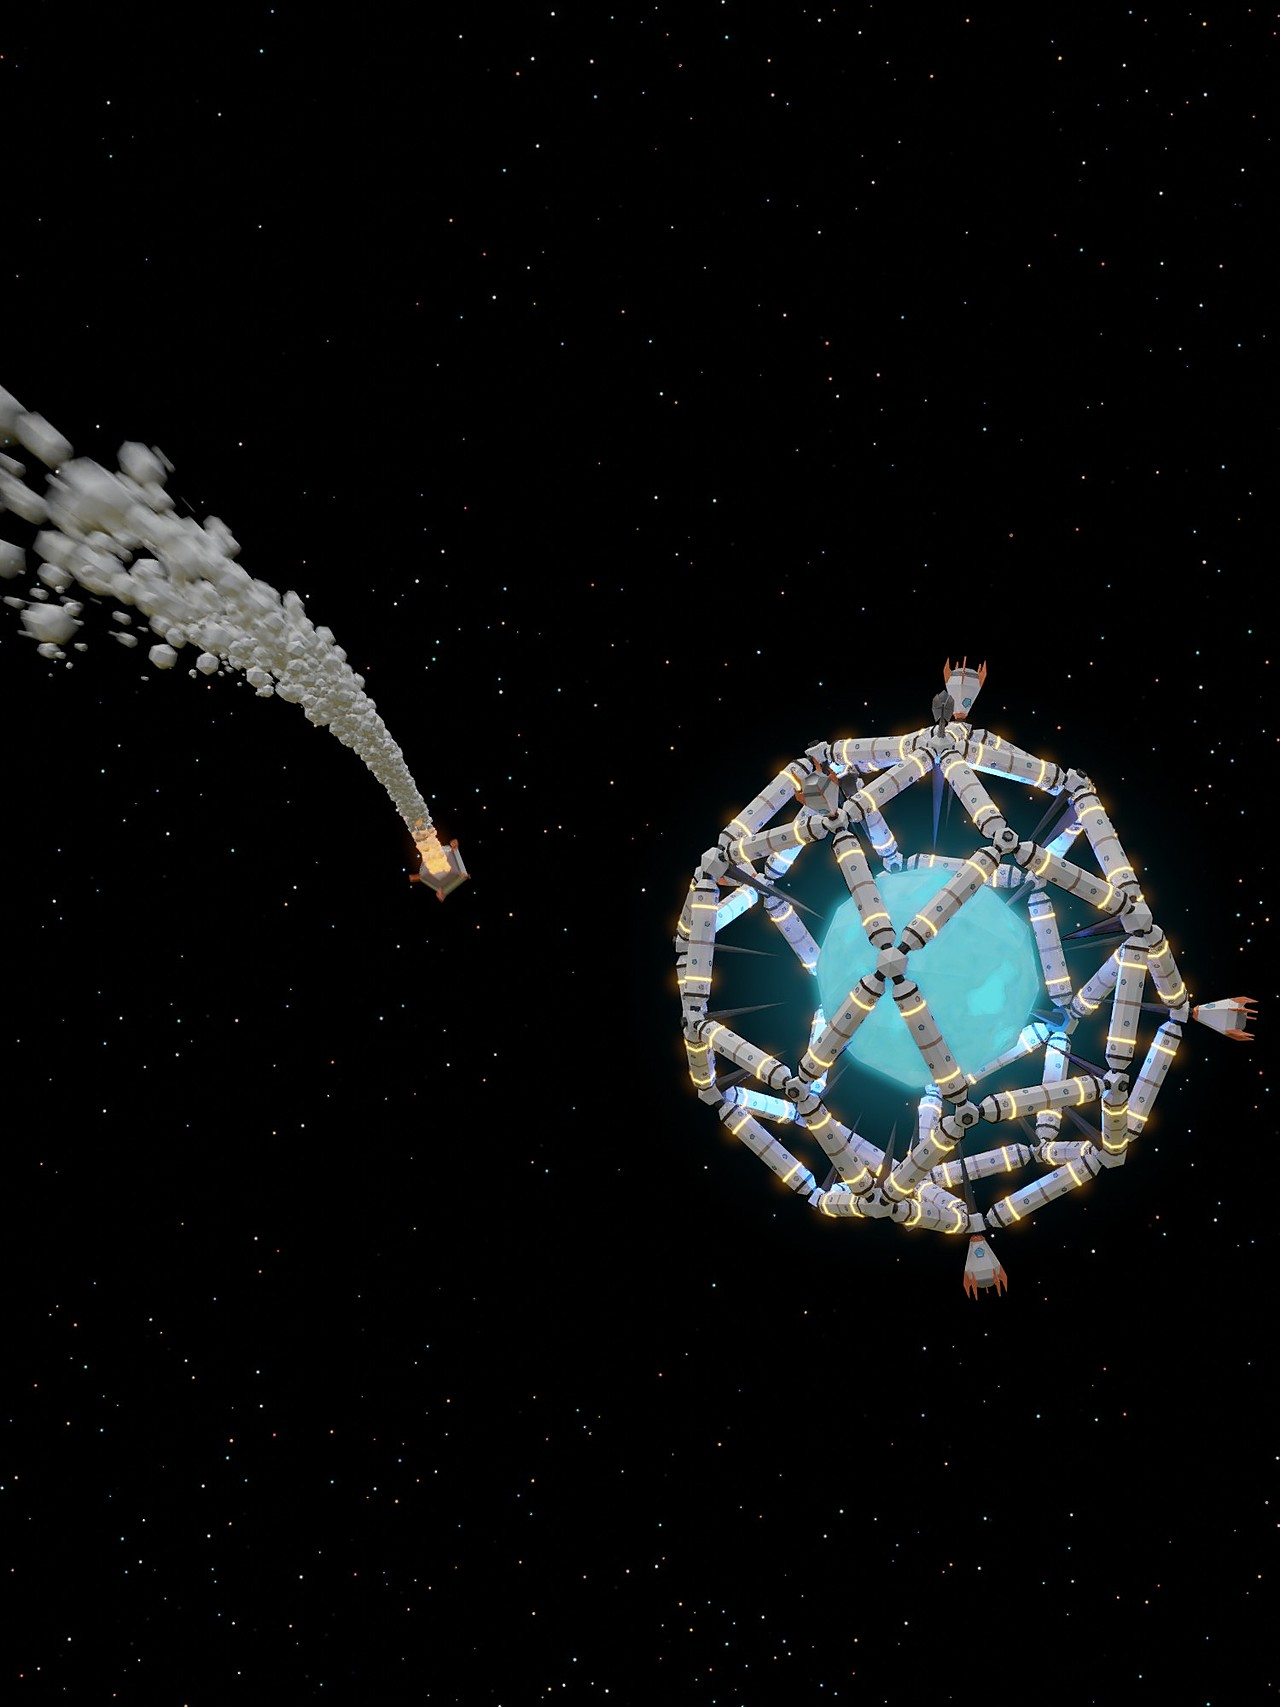 Space Station Challenge 2021 - StarLab P